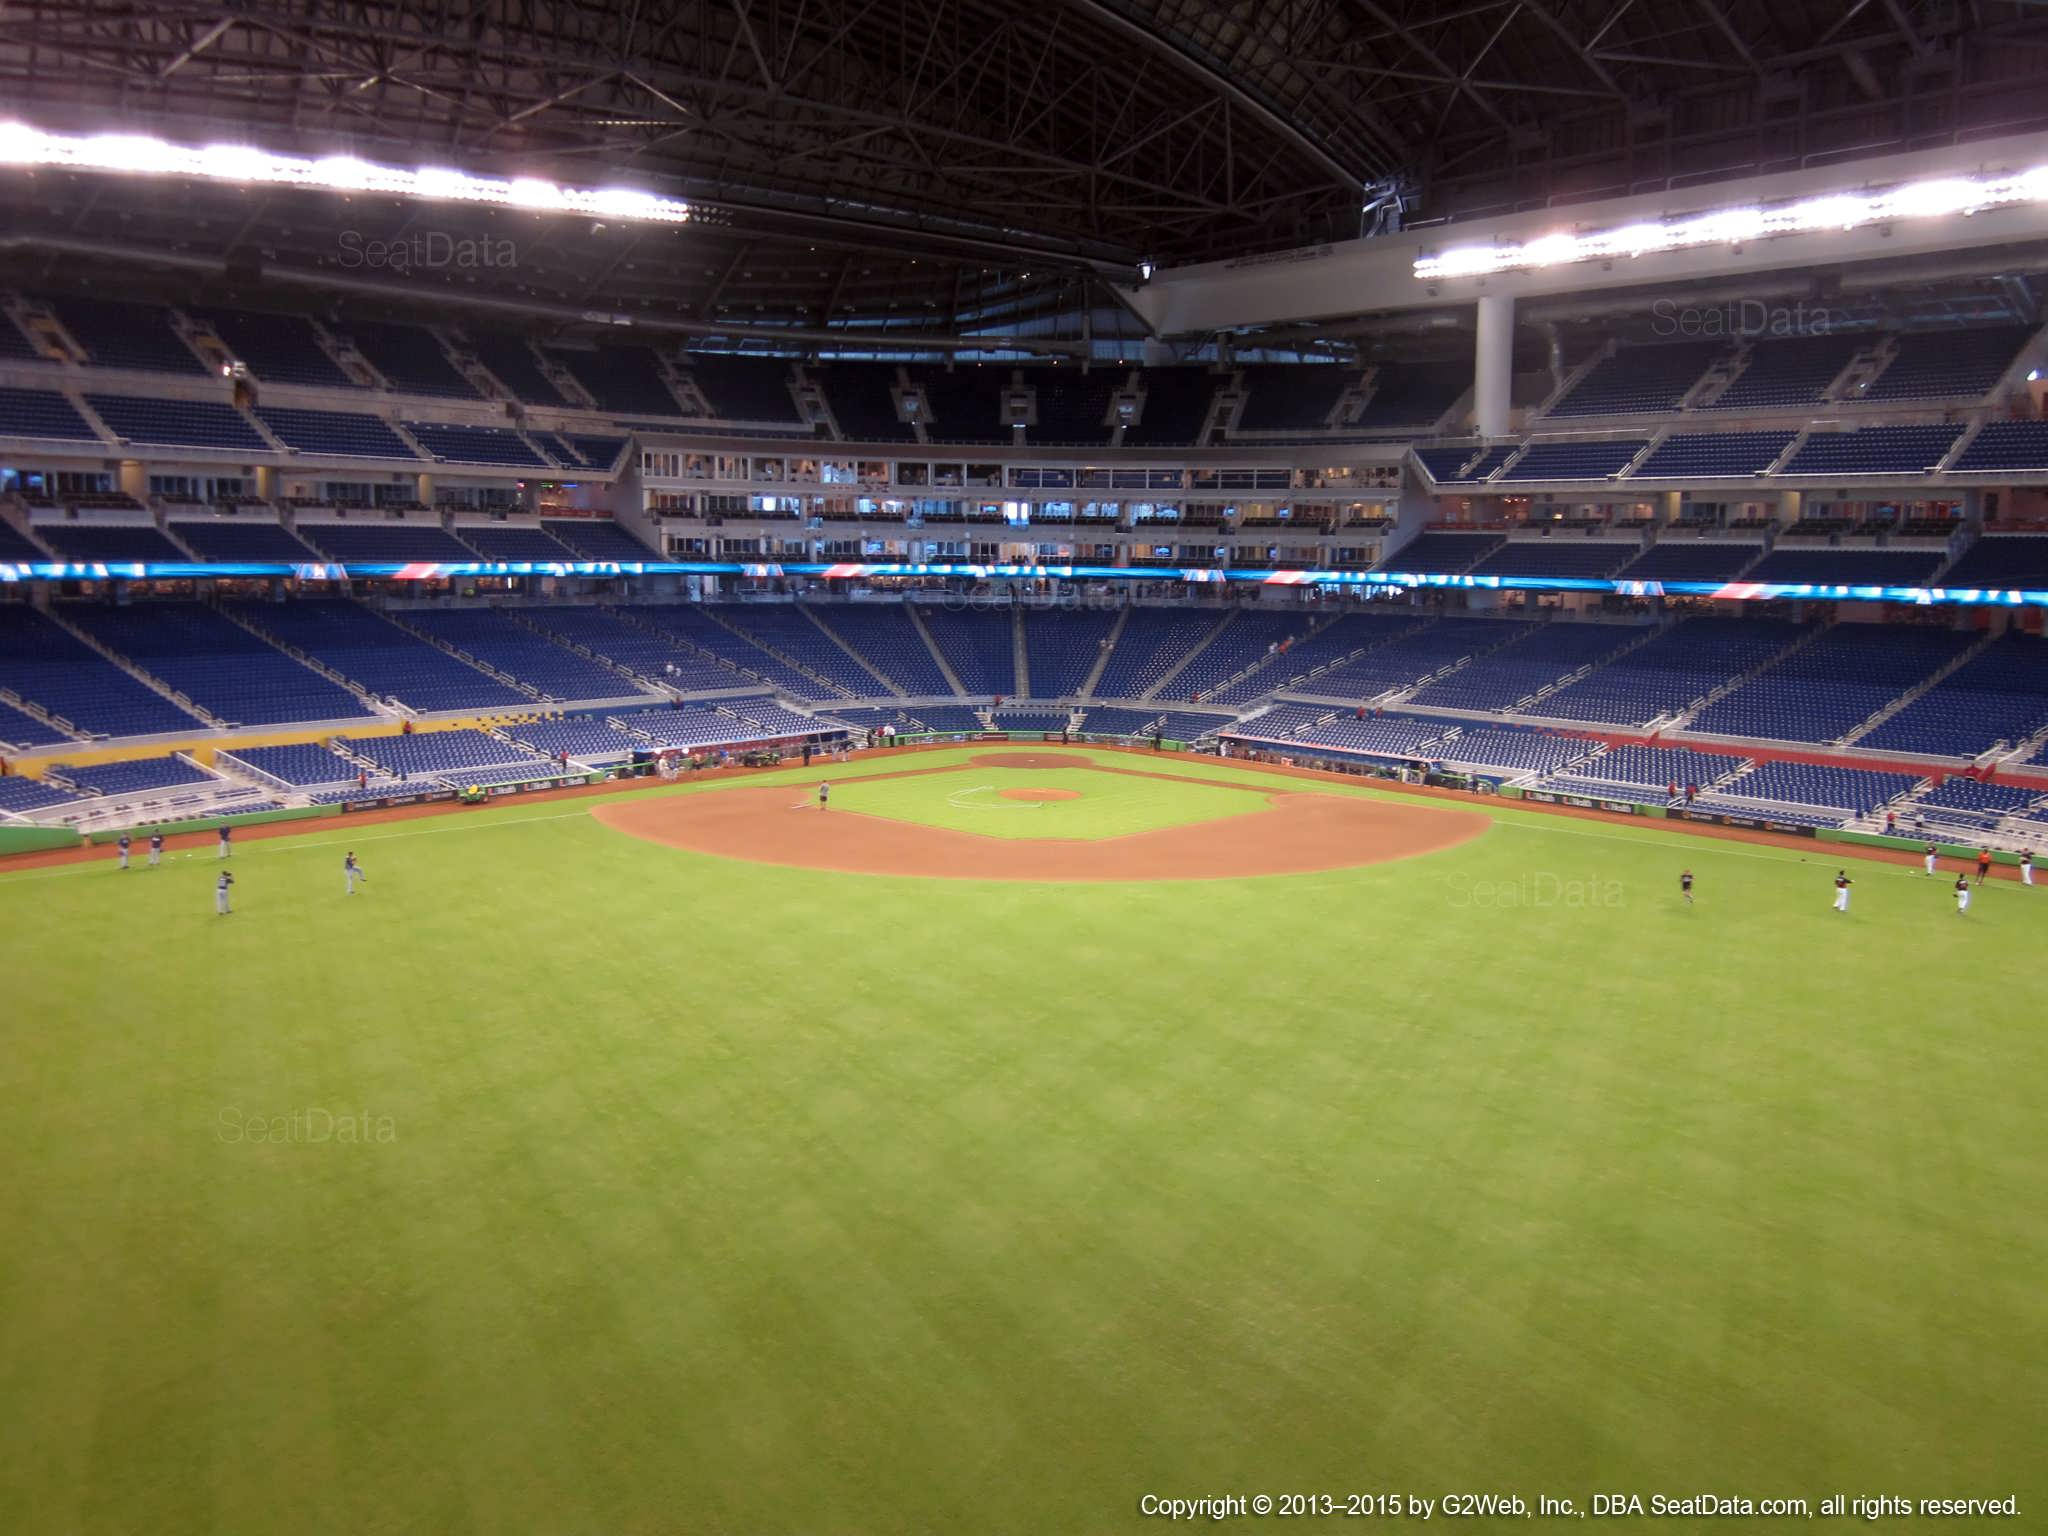 Seat view from section 134 at Marlins Park, home of the Miami Marlins